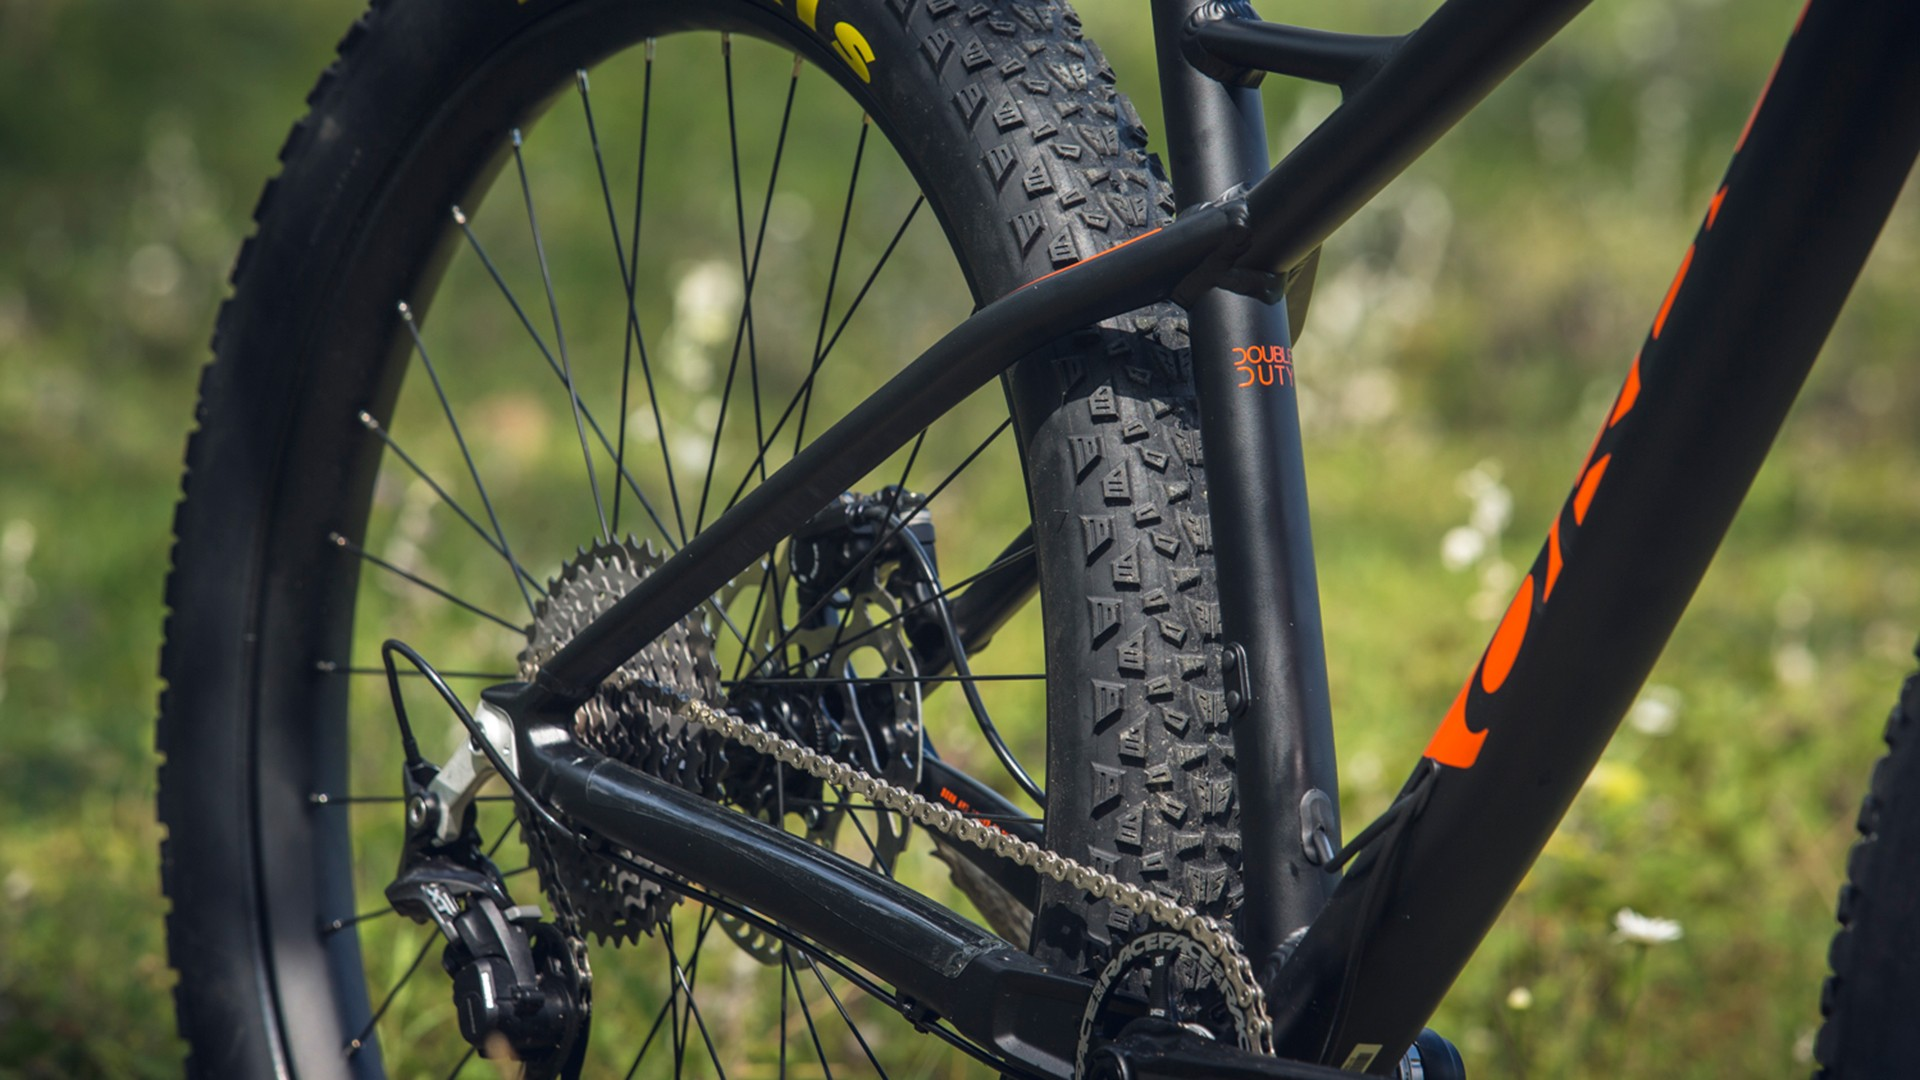 3in Maxxis Chronicle tires provided highly predictable traction on rocky terrain